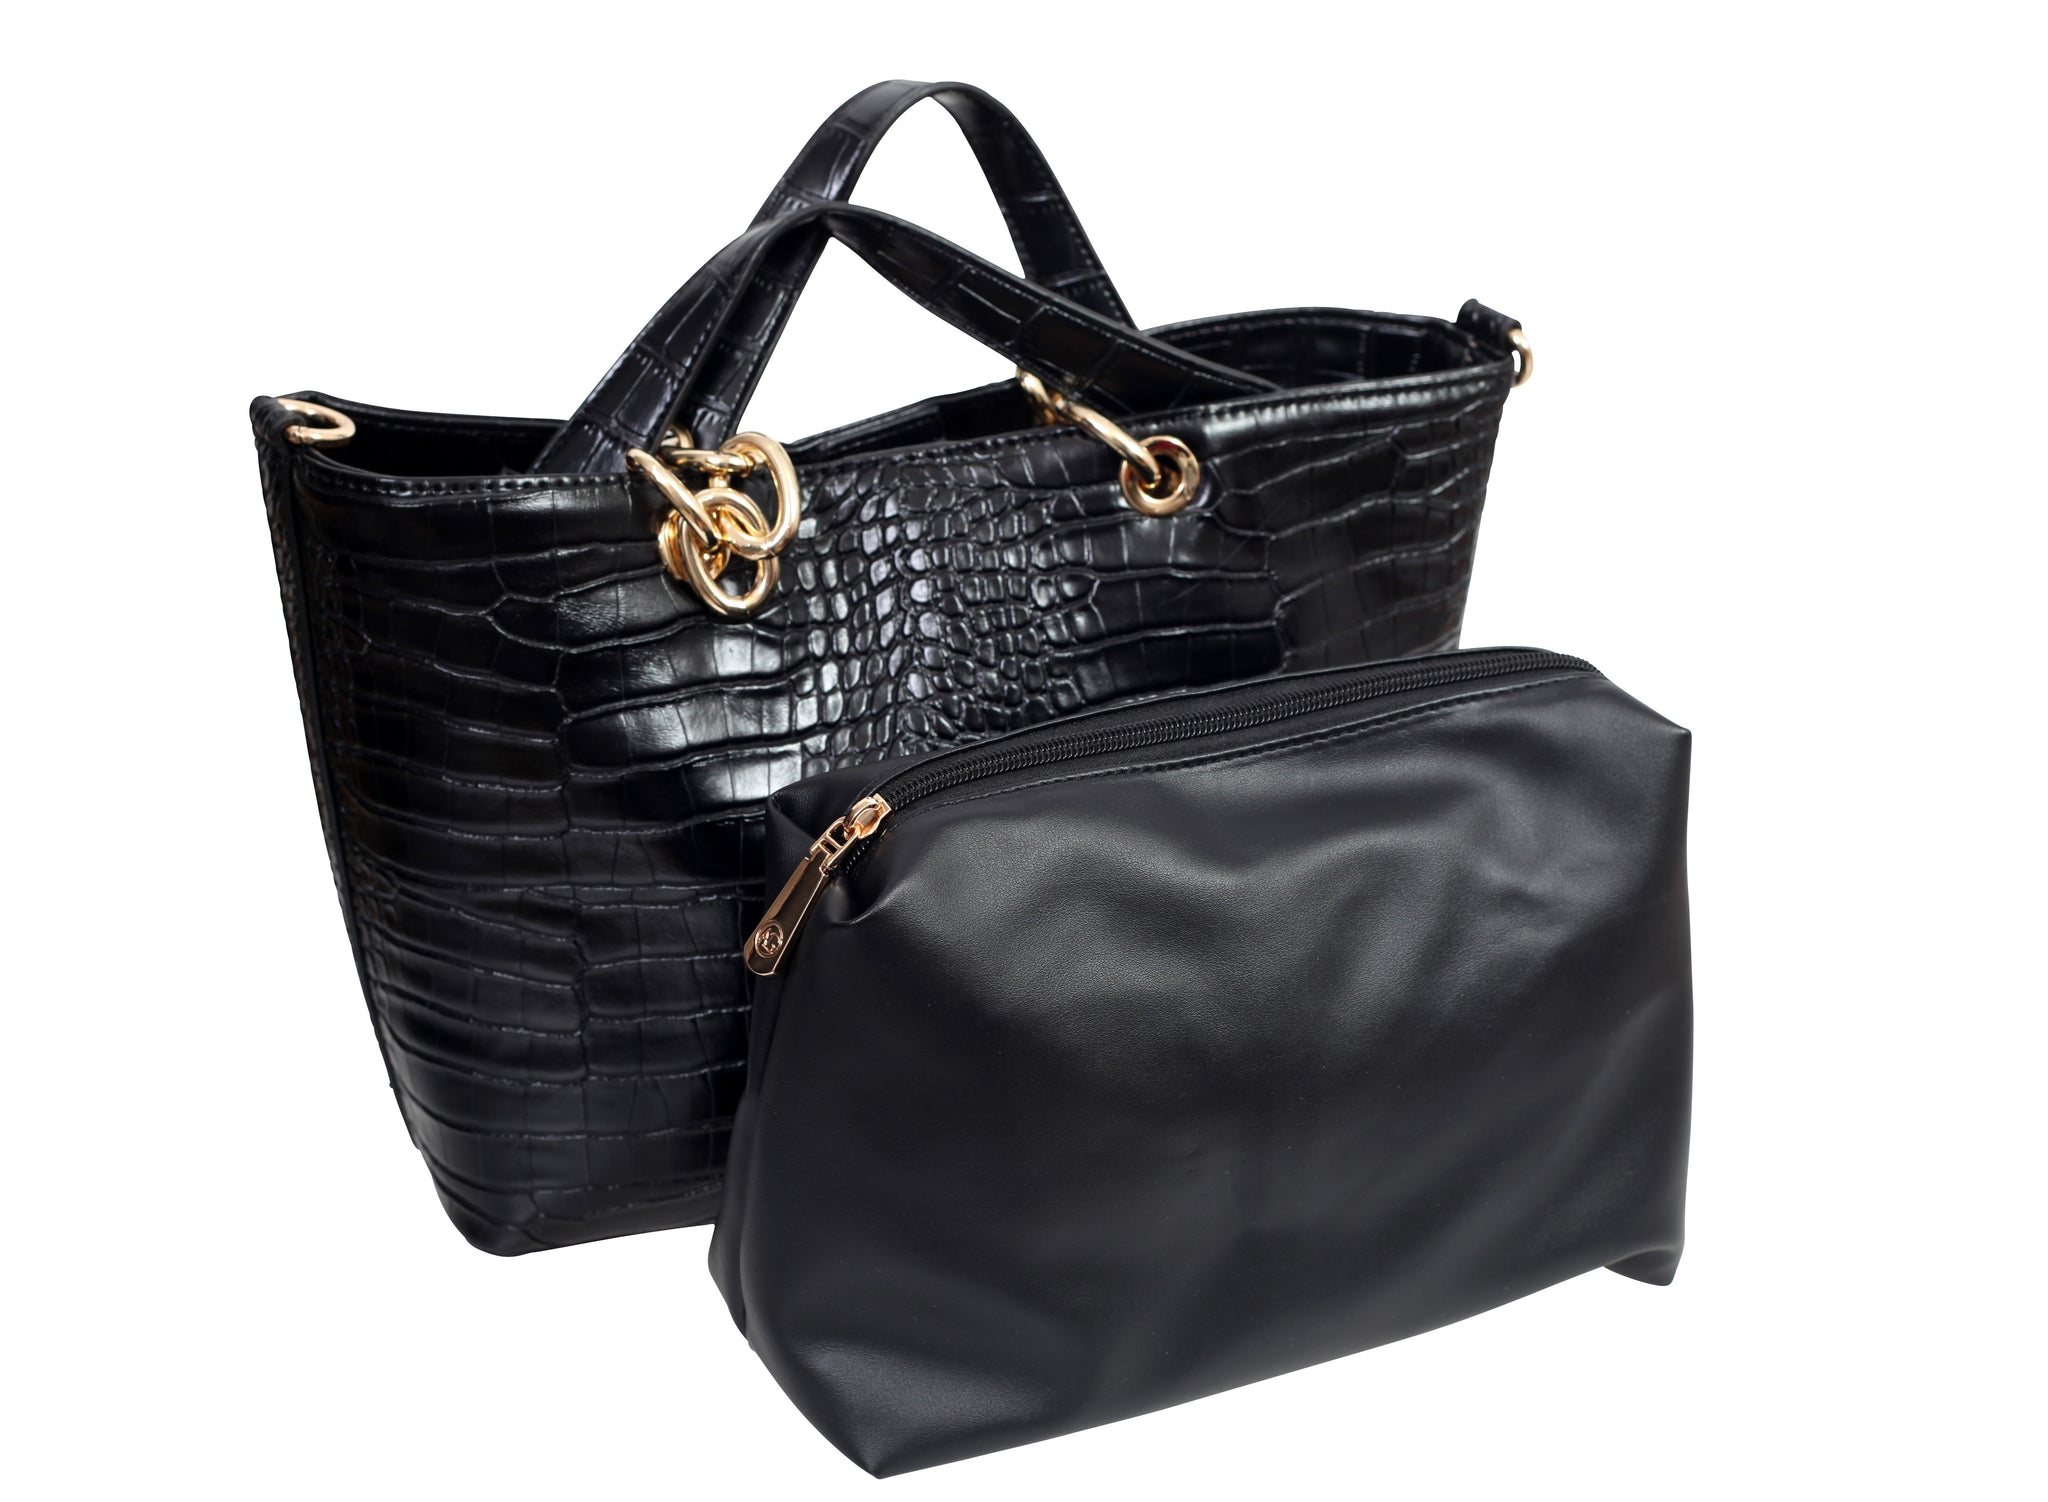 3/4 view of a croc effect handbag and a zipper pouch placed next to each other